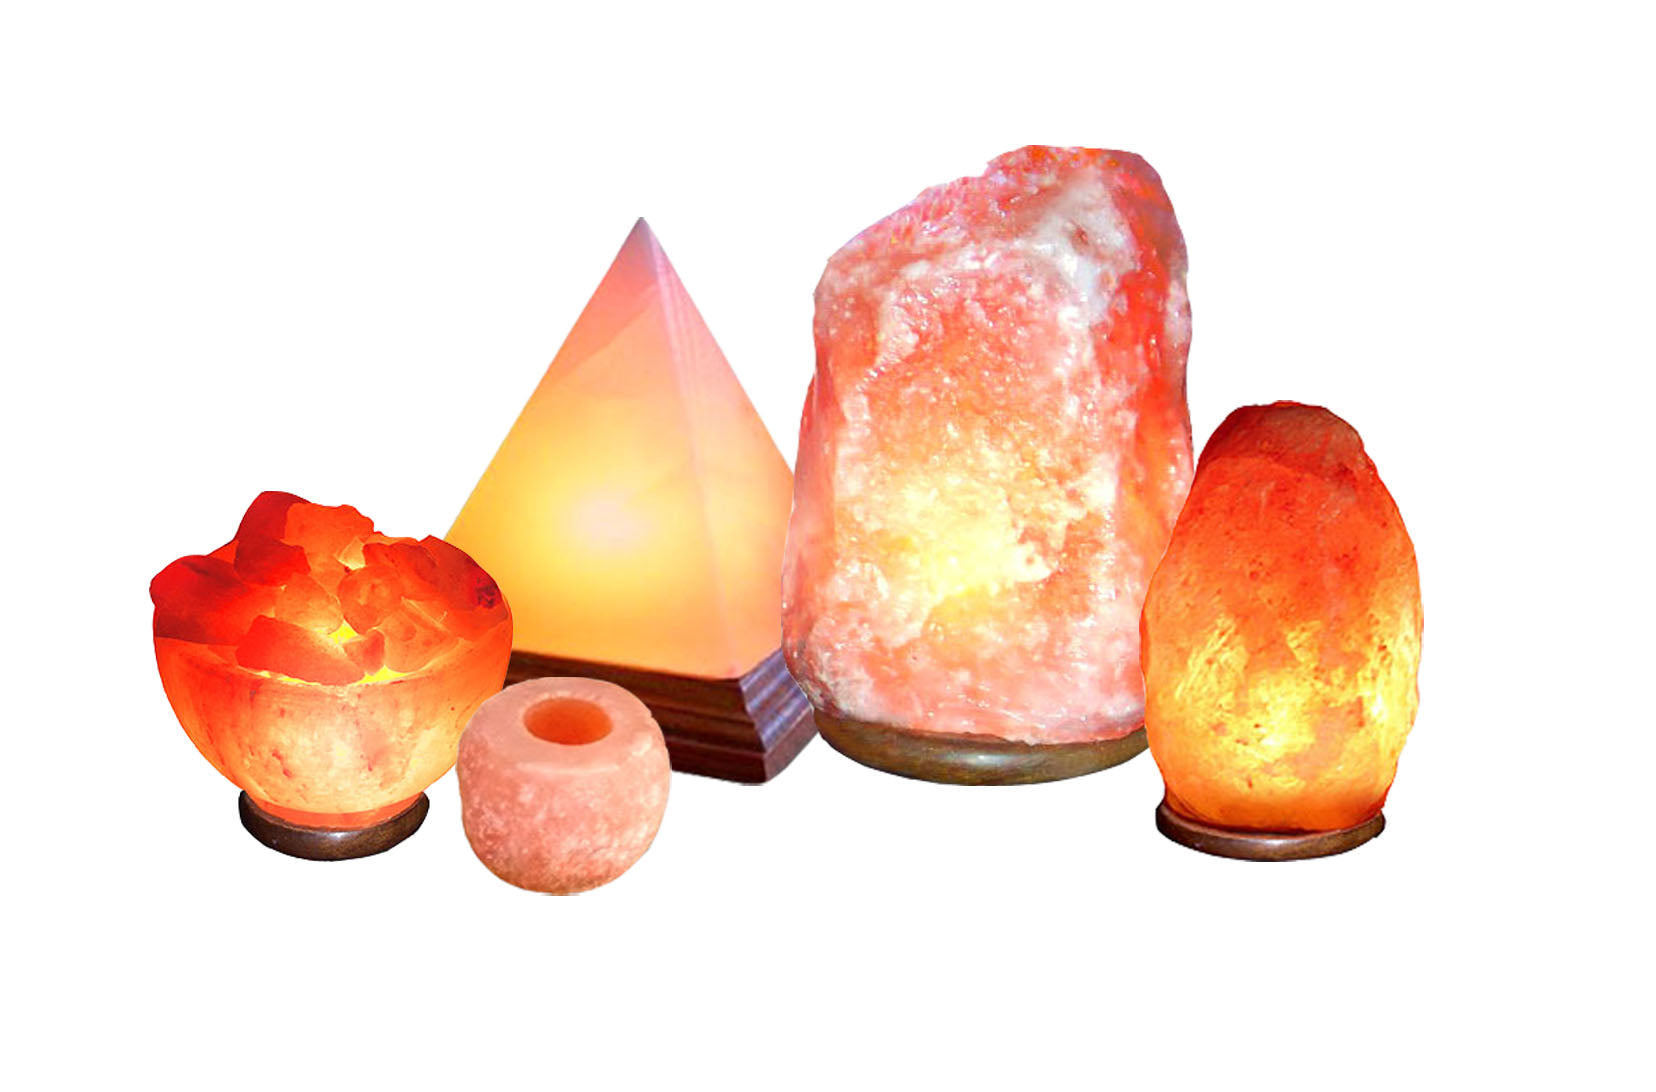 Ankh Rah s Healthy Living Guide: Science Proves Salt Lamps Help People with Anxiety. Here s How!